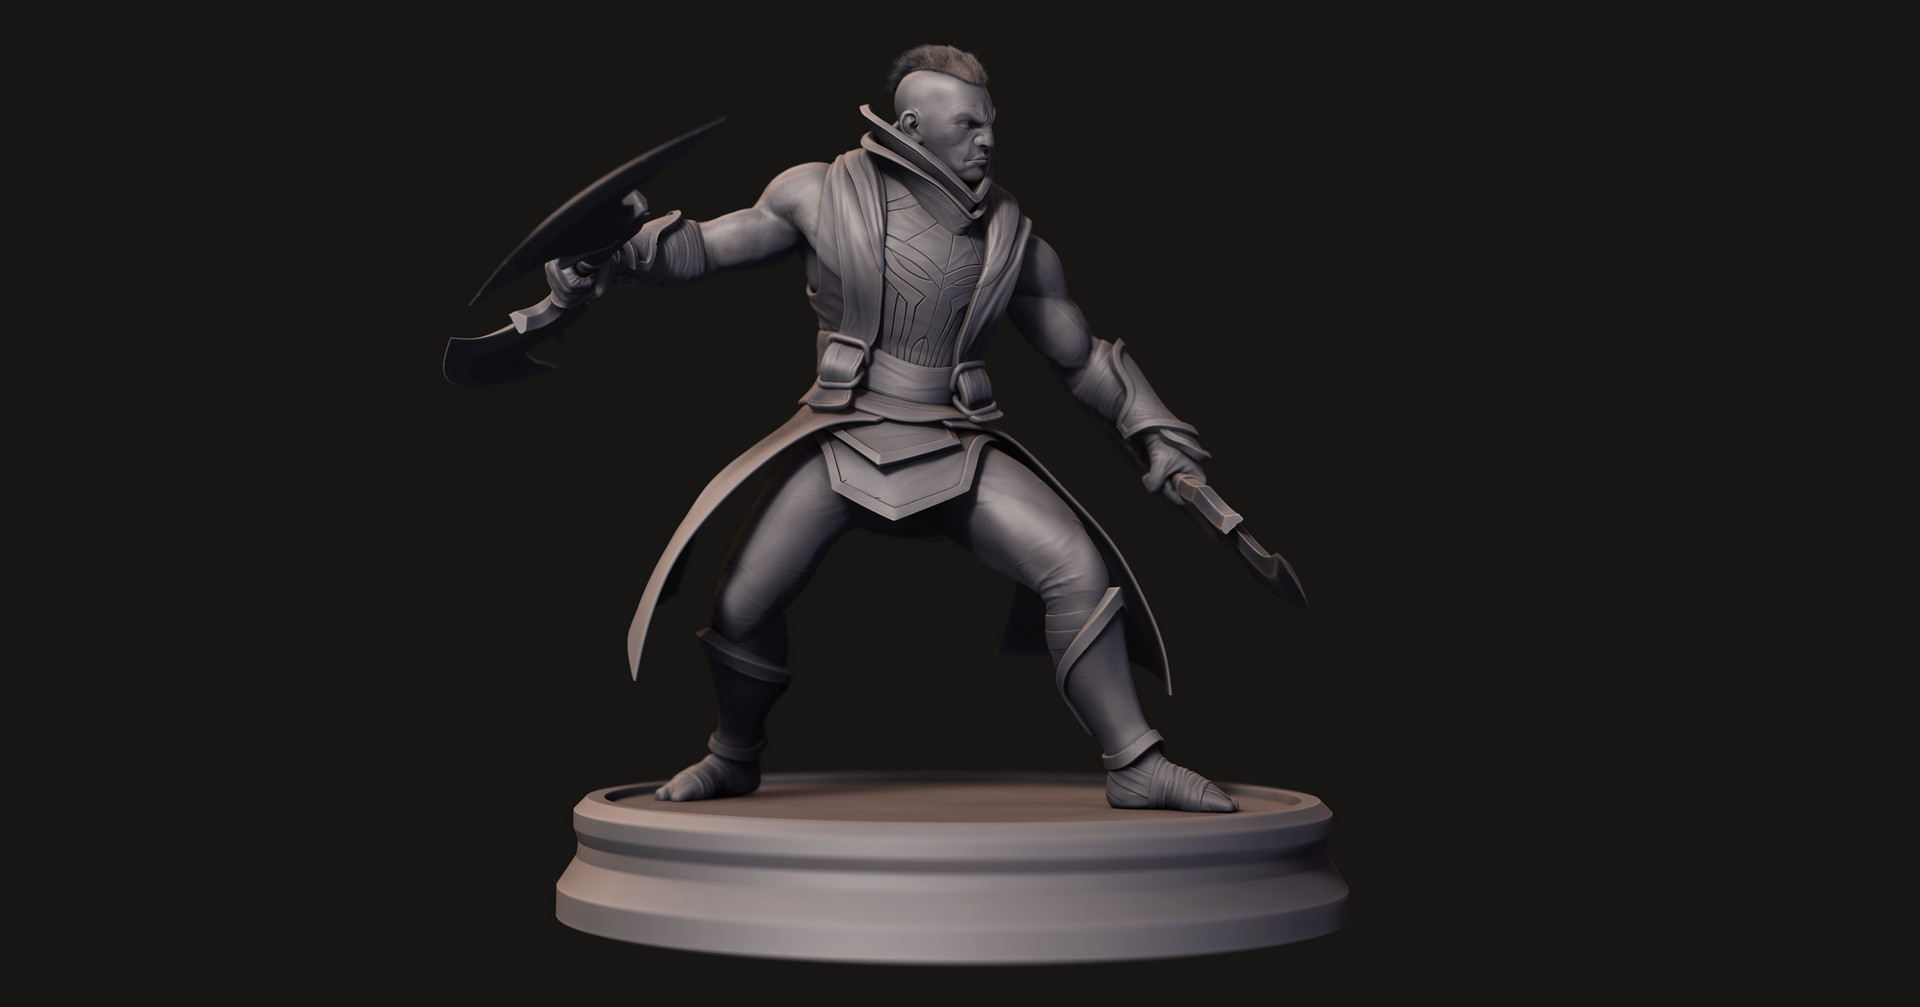 Omar chaouch antimage dota 2 fanart sculpt 02